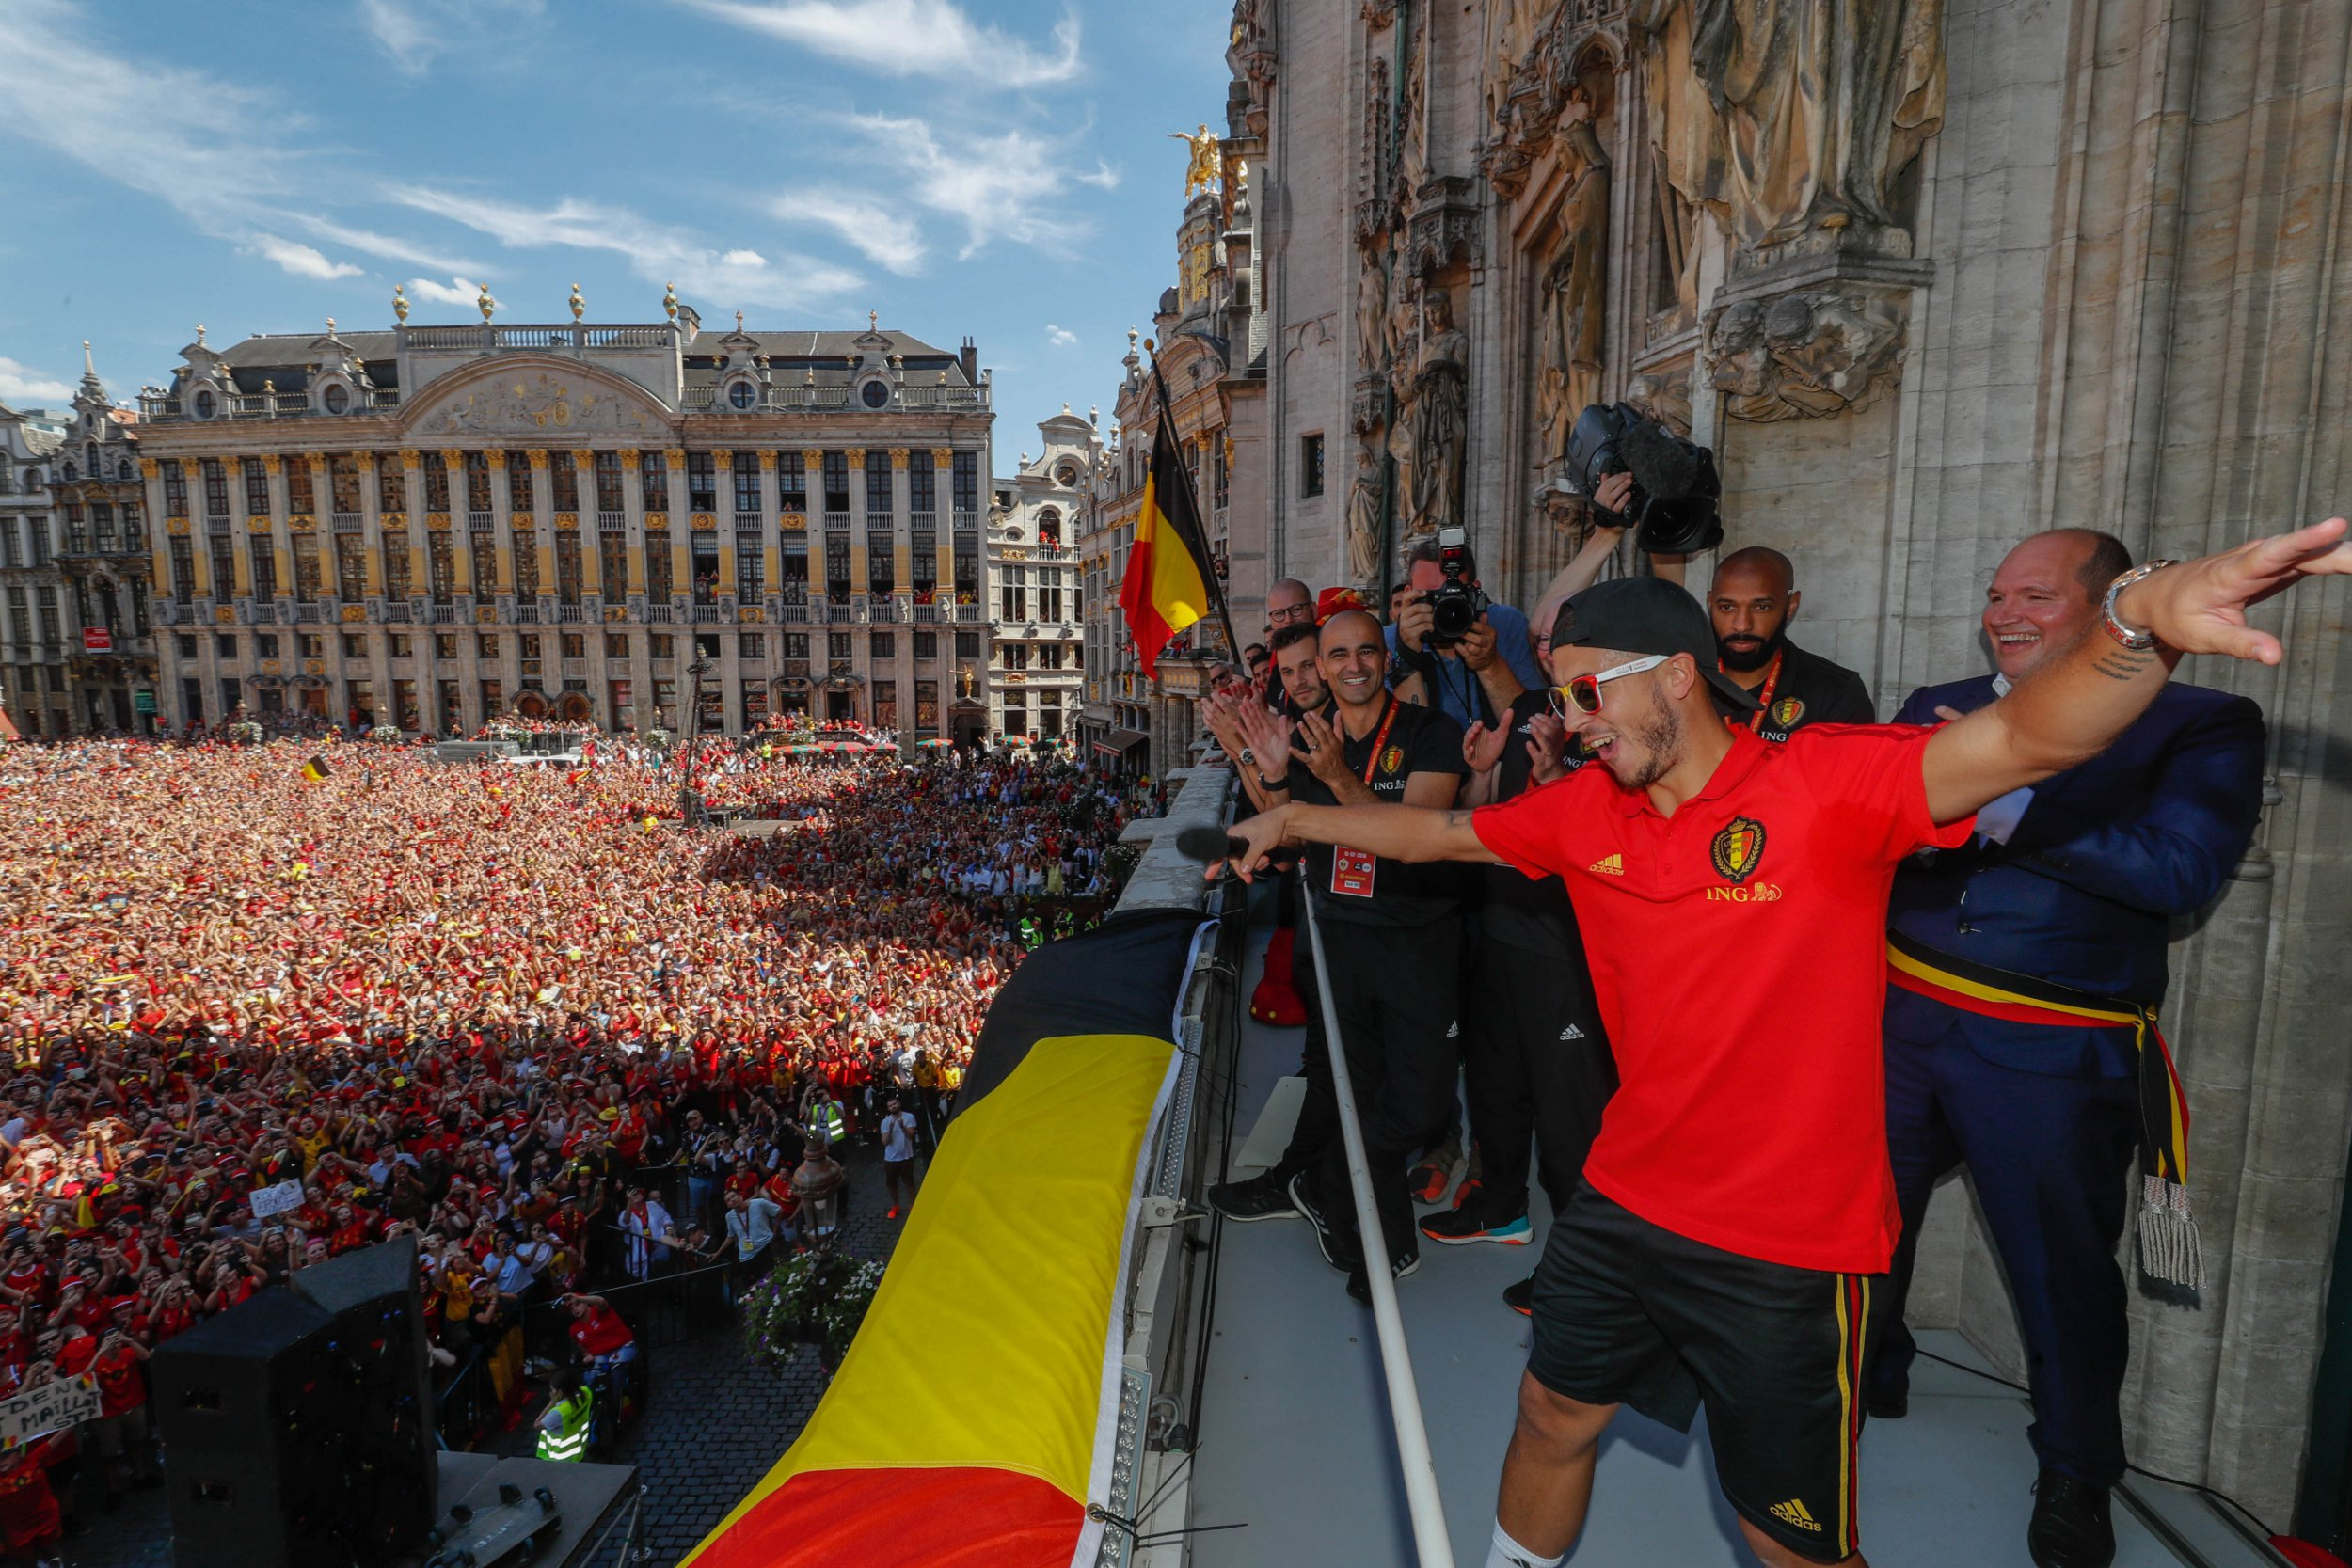 BRUSSEL, BELGIUM - JULY 15: Belgian soccer team player Eden Hazard celebrates on the balcony of the city hall at the Brussels' Grand Place, after taking the third place in the World Cup 2018 on July 15, 2018 in Brussels, Belgium. (Photo by Yves Herman/Royal Belgium Pool/Getty Images)